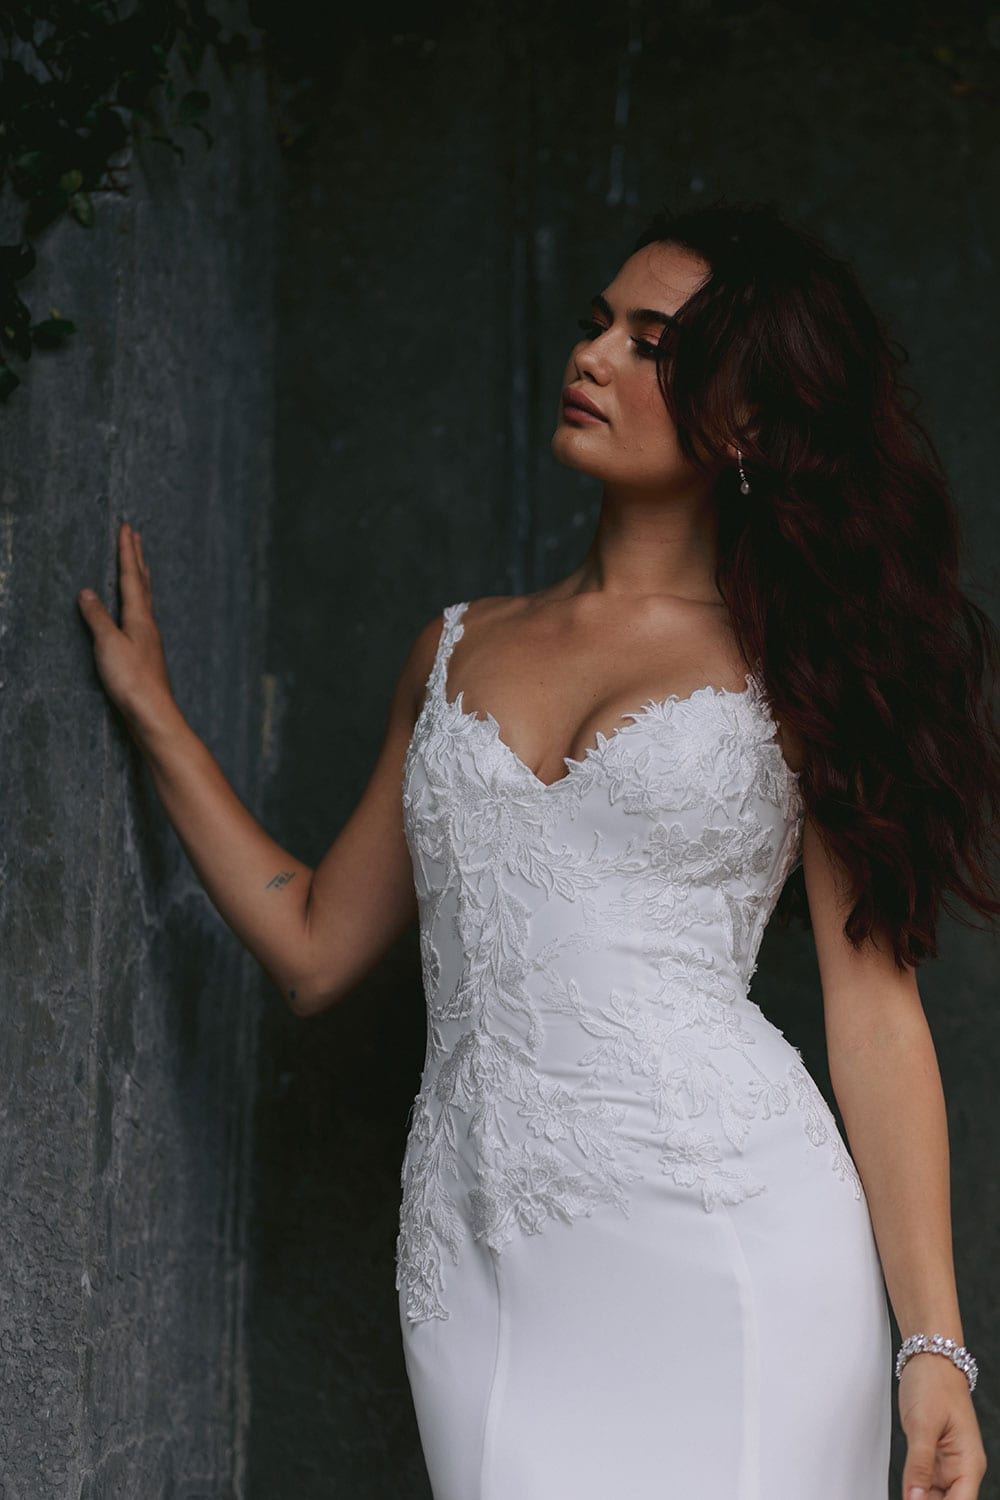 Ana Wedding gown from Vinka Design - This beautiful gown is graced by hand-appliqued delicate floral leaf lace, subtly worked into the front of the bodice and more prominently on the back. A fit-and-flare cut shapes the figure. Model wearing gown highlighting bodice shape.